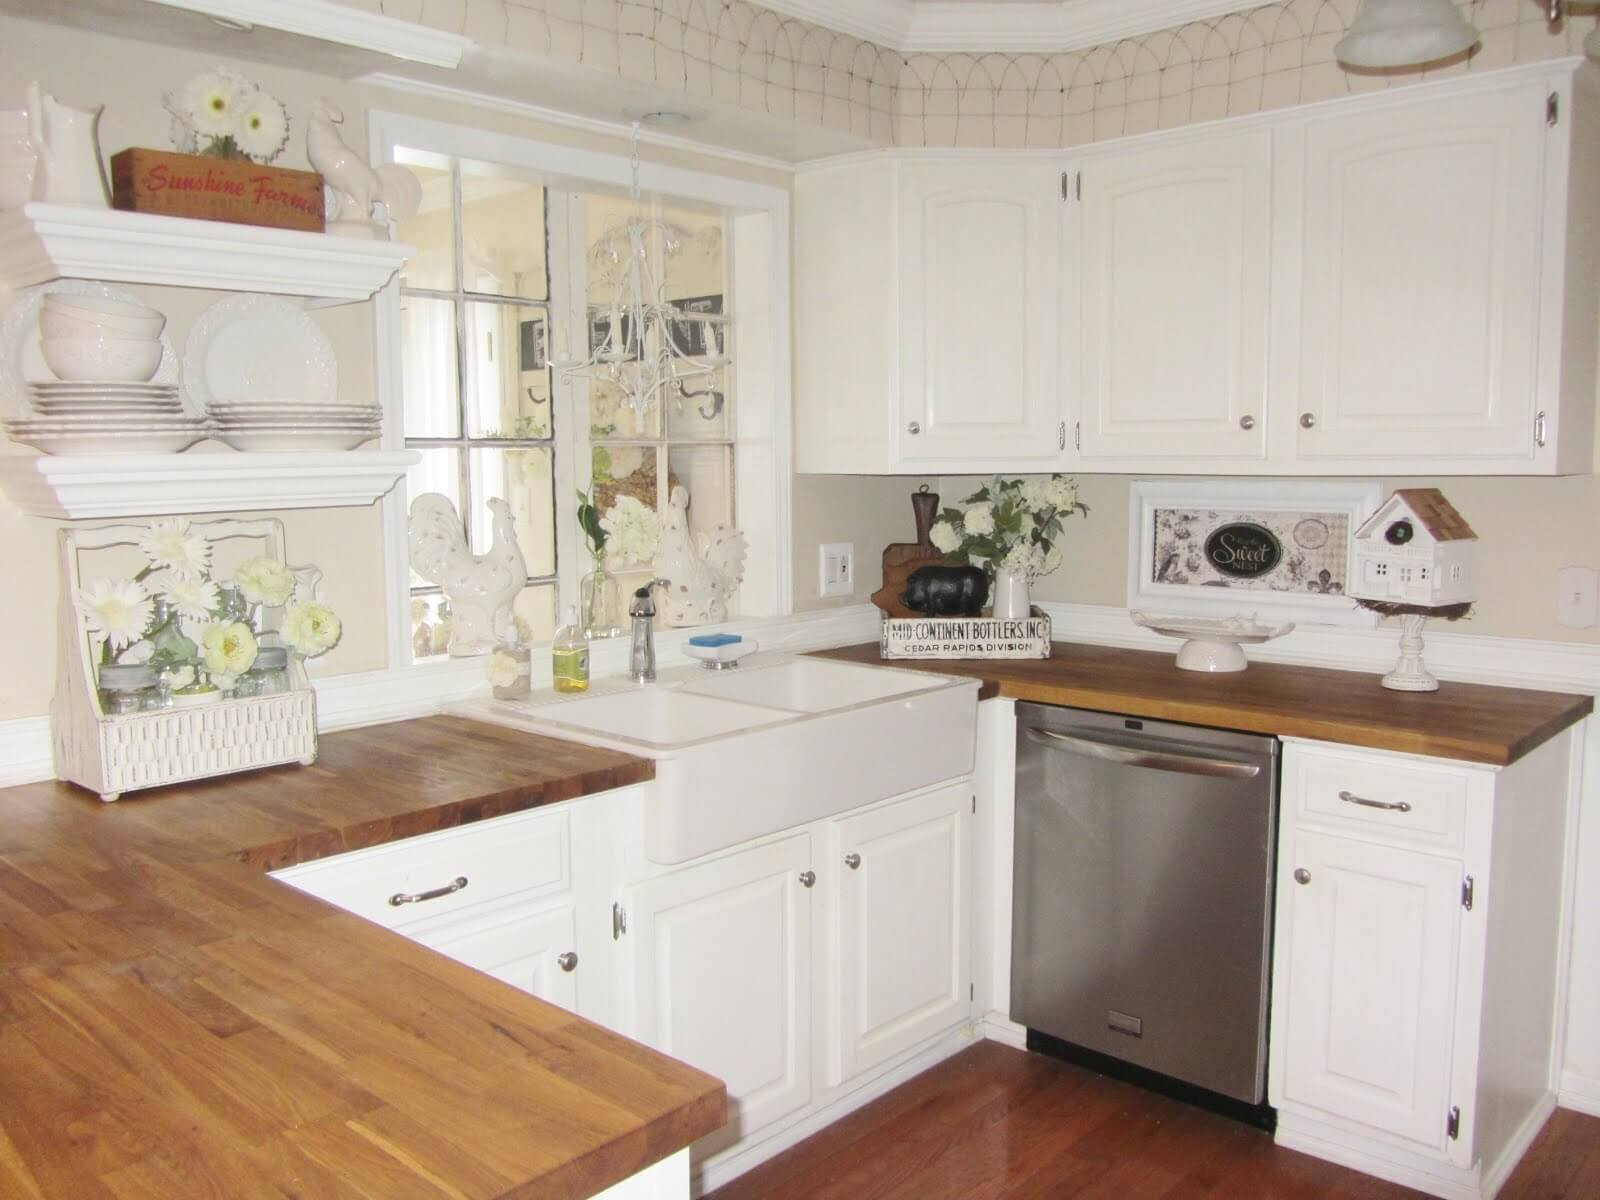 35 Best Farmhouse Kitchen Cabinet Ideas and Designs for 2019 Ideas For Kitchen Cabinets White Farmhouse on kraftmaid kitchen island ideas, farmhouse floor ideas, victorian kitchen cabinet ideas, apartment kitchen cabinet ideas, rustic kitchen ideas, ranch kitchen cabinet ideas, home cabinet ideas, industrial kitchen cabinet ideas, victorian style kitchen ideas, kitchen bar cabinet ideas, farmhouse vanity ideas, farmhouse dining set ideas, farmhouse closet ideas, porch cabinet ideas, beach kitchen cabinet ideas, cabin kitchen cabinet ideas, farmhouse door ideas, farmhouse furniture ideas, english cottage kitchen cabinet ideas, prim kitchen ideas,